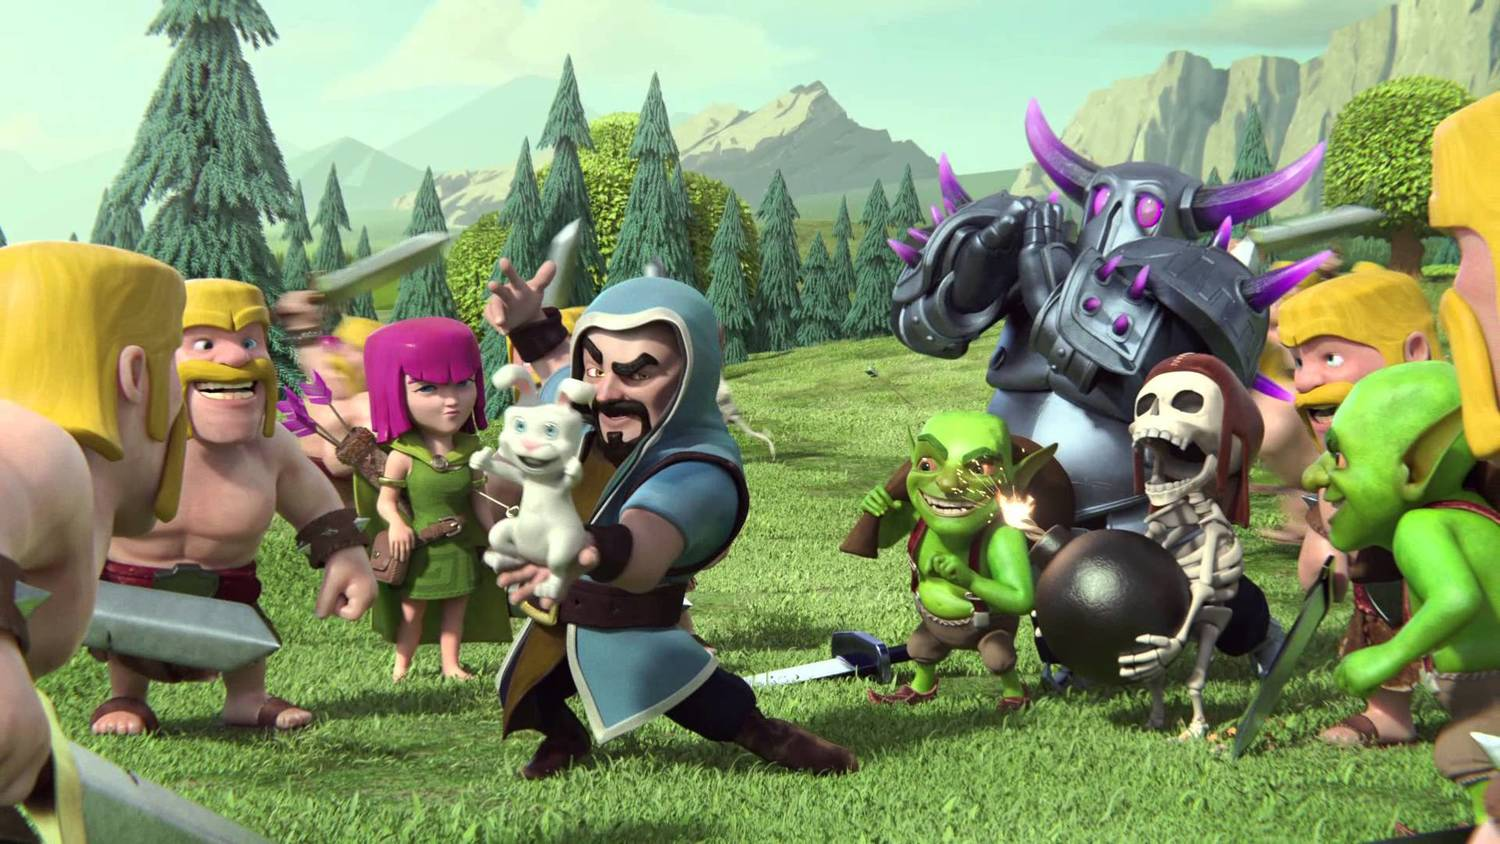 CLASH OF CLANS Made So Much Money It Accounts For 1/5th Of